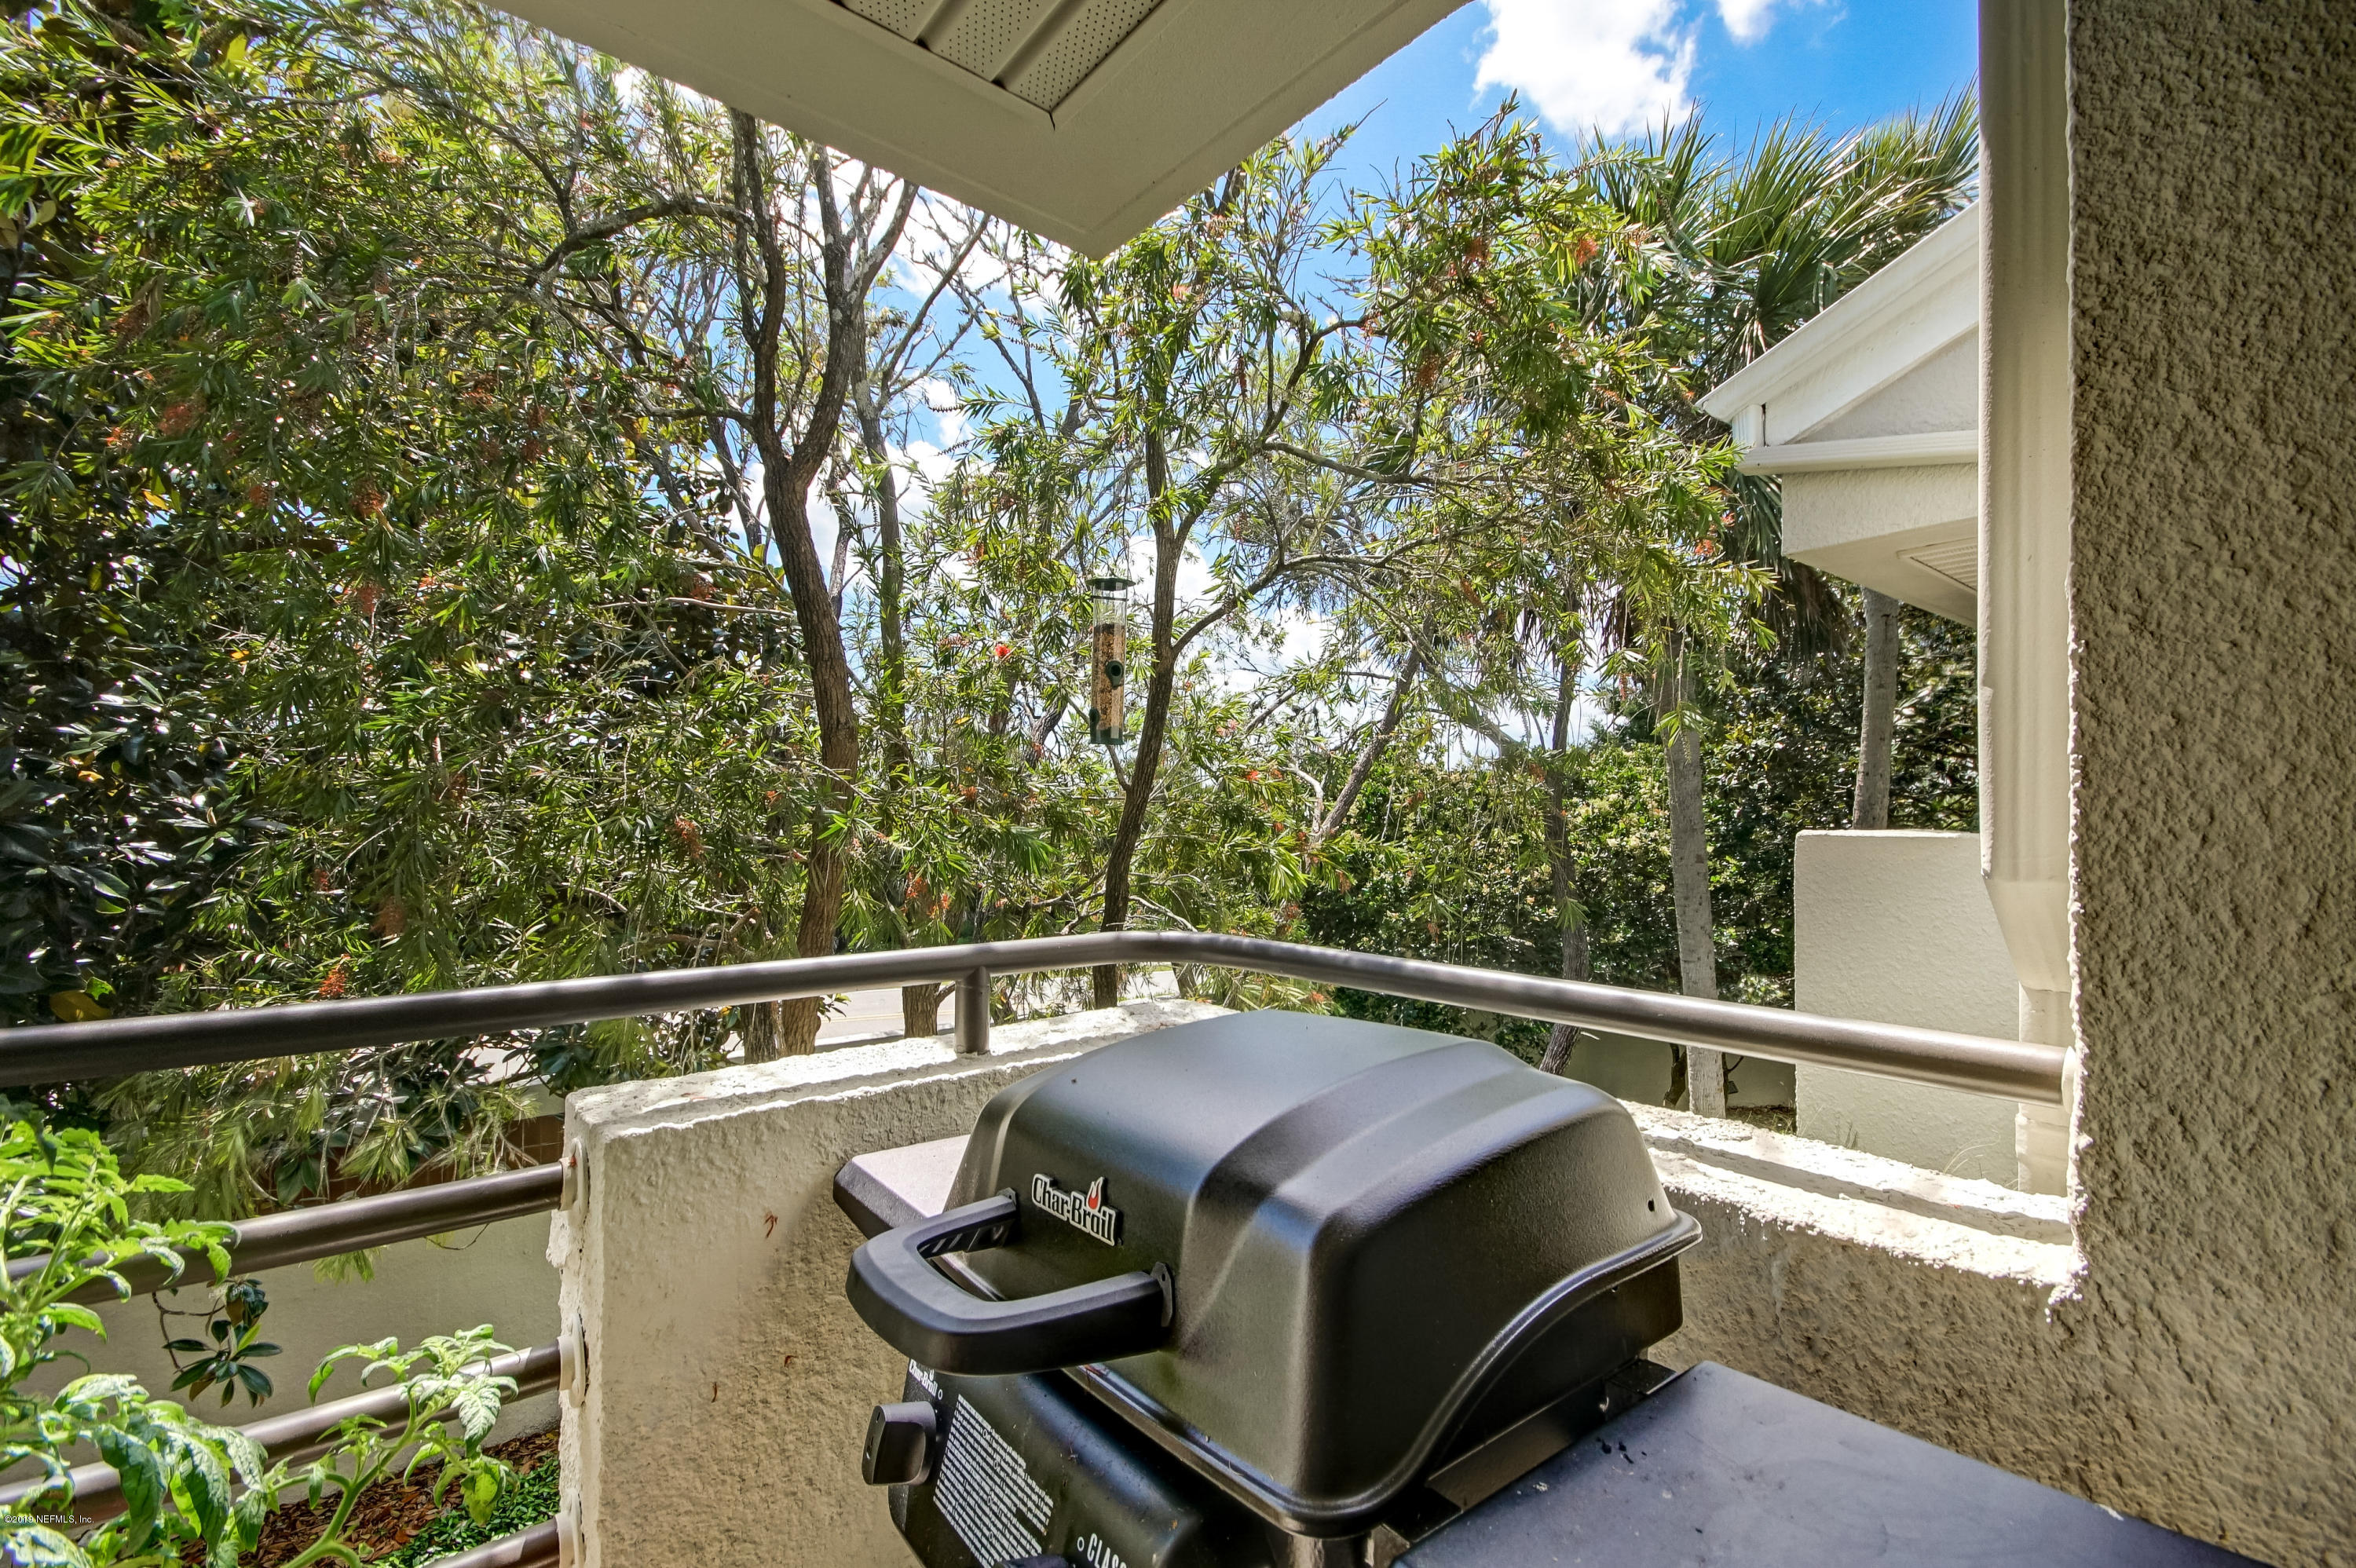 633 SUMMER PLACE, PONTE VEDRA BEACH, FLORIDA 32082, ,1 BathroomBathrooms,Condo,For sale,SUMMER PLACE,992423